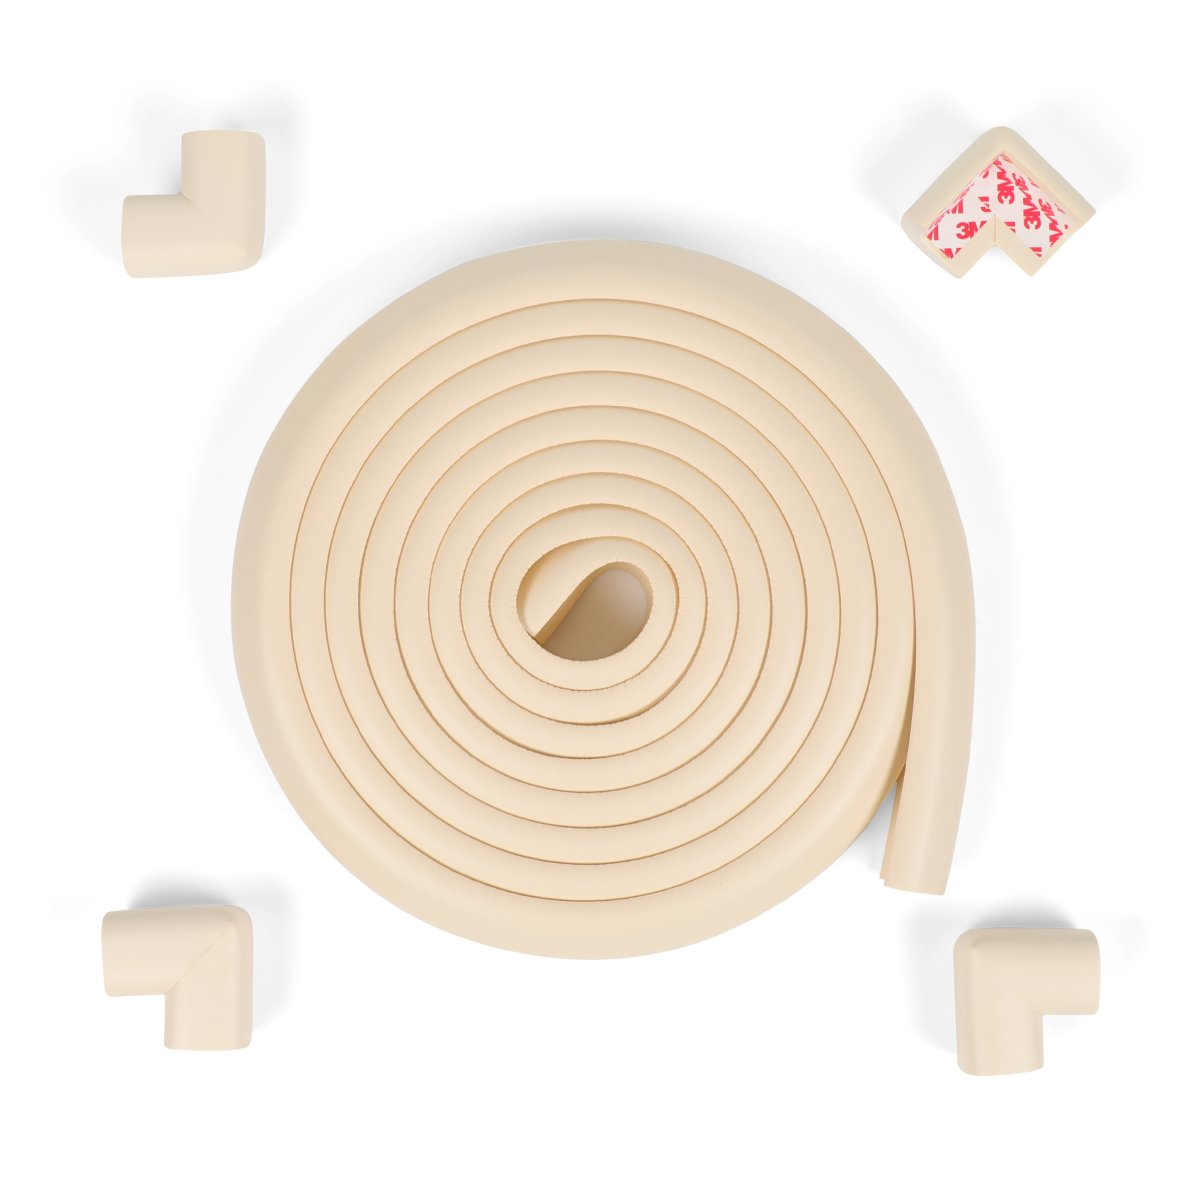 Table Edge Hearth Protector Fireplace Bumpers for Baby 16.2 ft(15 ft Edge + 4 Corners) Home School Furniture Safety Bumper(Cream)